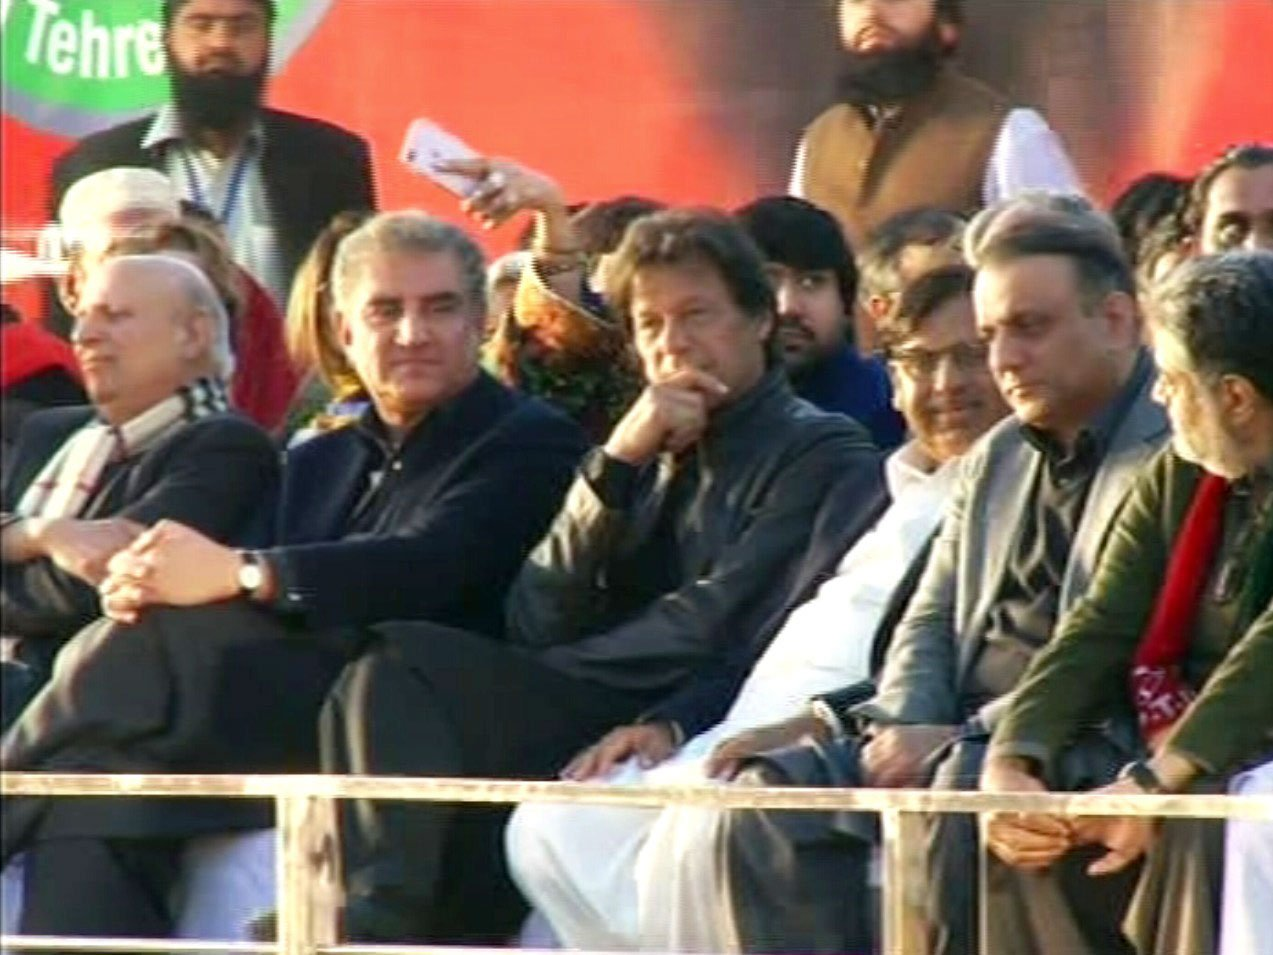 Pakistan Tehreek-e-Insaf (PTI) chairperson Imran Khan seated alongside other leaders on the stage at the venue of a party rally at the football ground in Okara on December 17, 2017